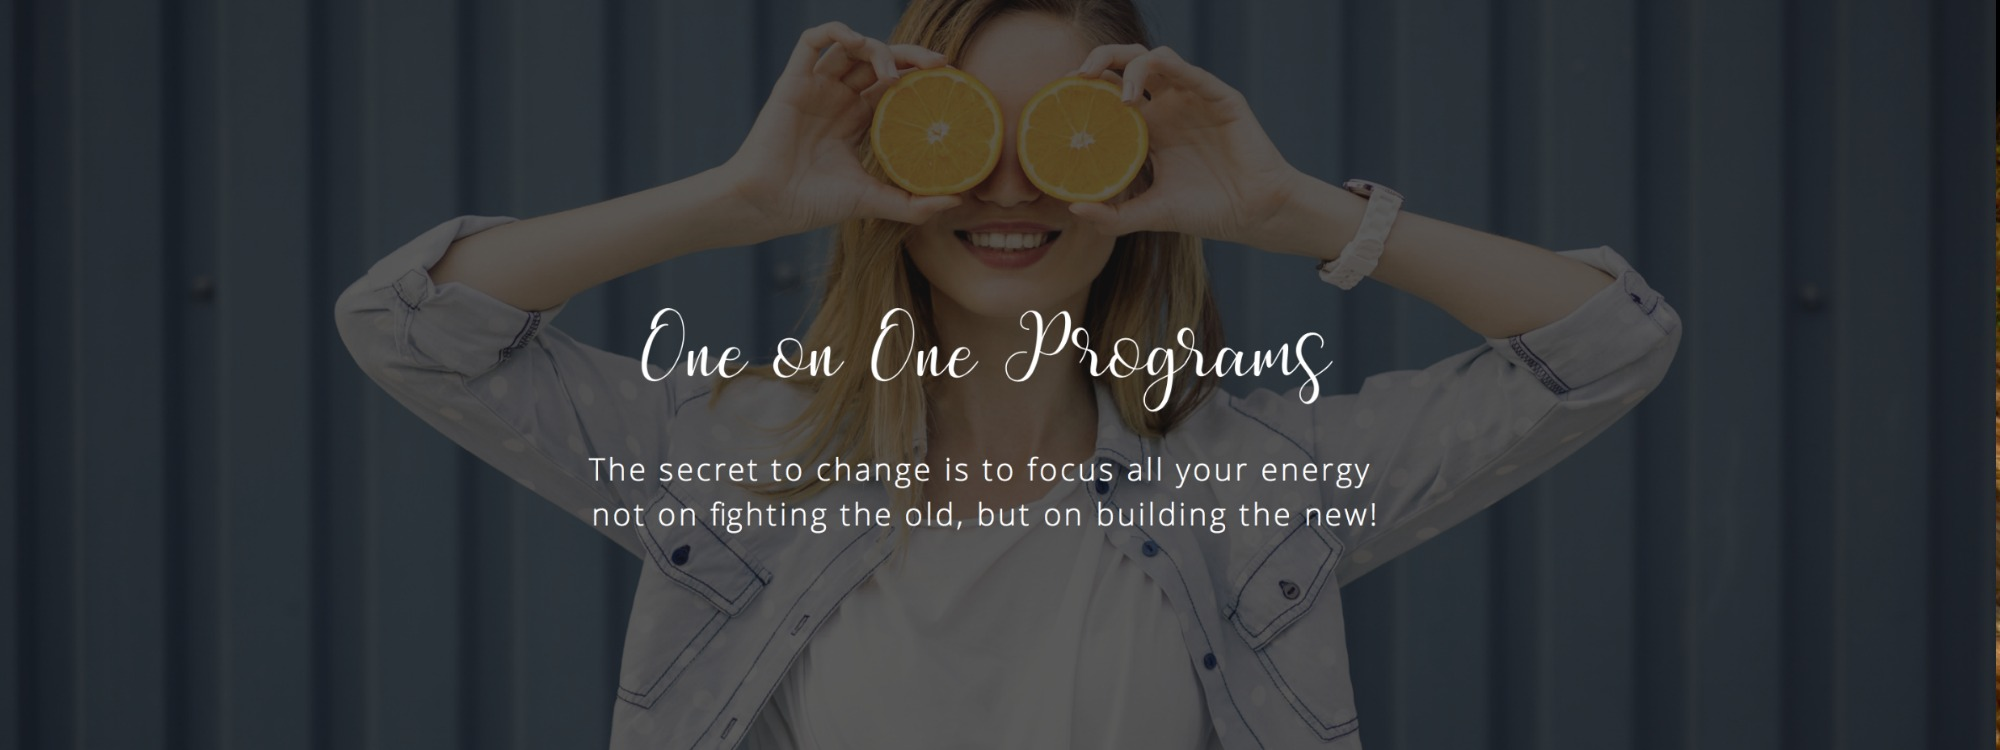 One on One Programs